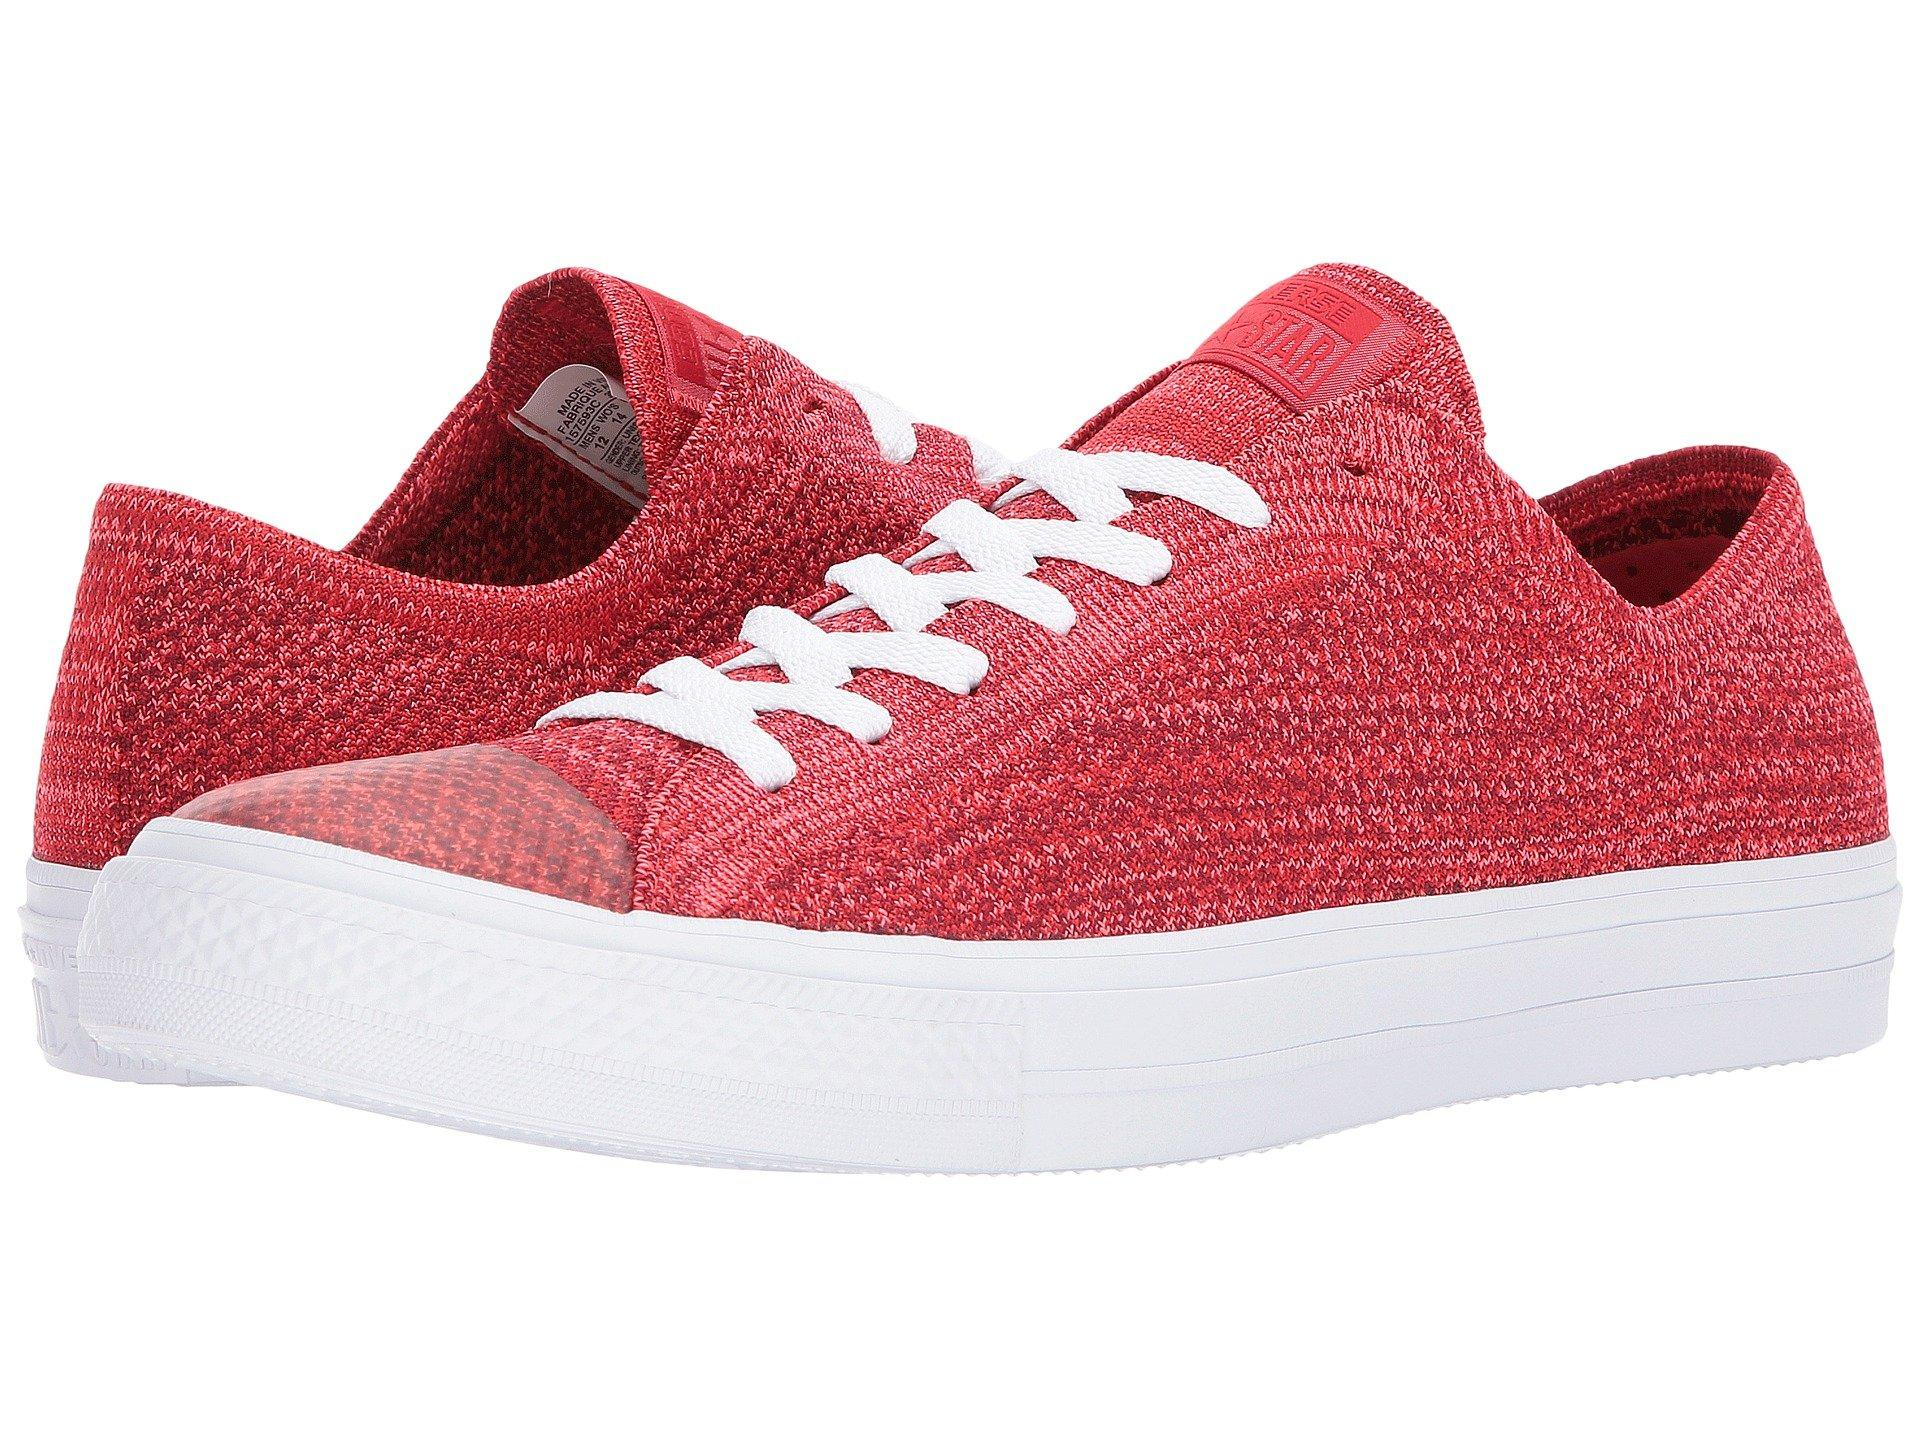 68a49650 Chuck Taylor® All Star® X Nike Flyknit Ox, Casino/Team Red/White